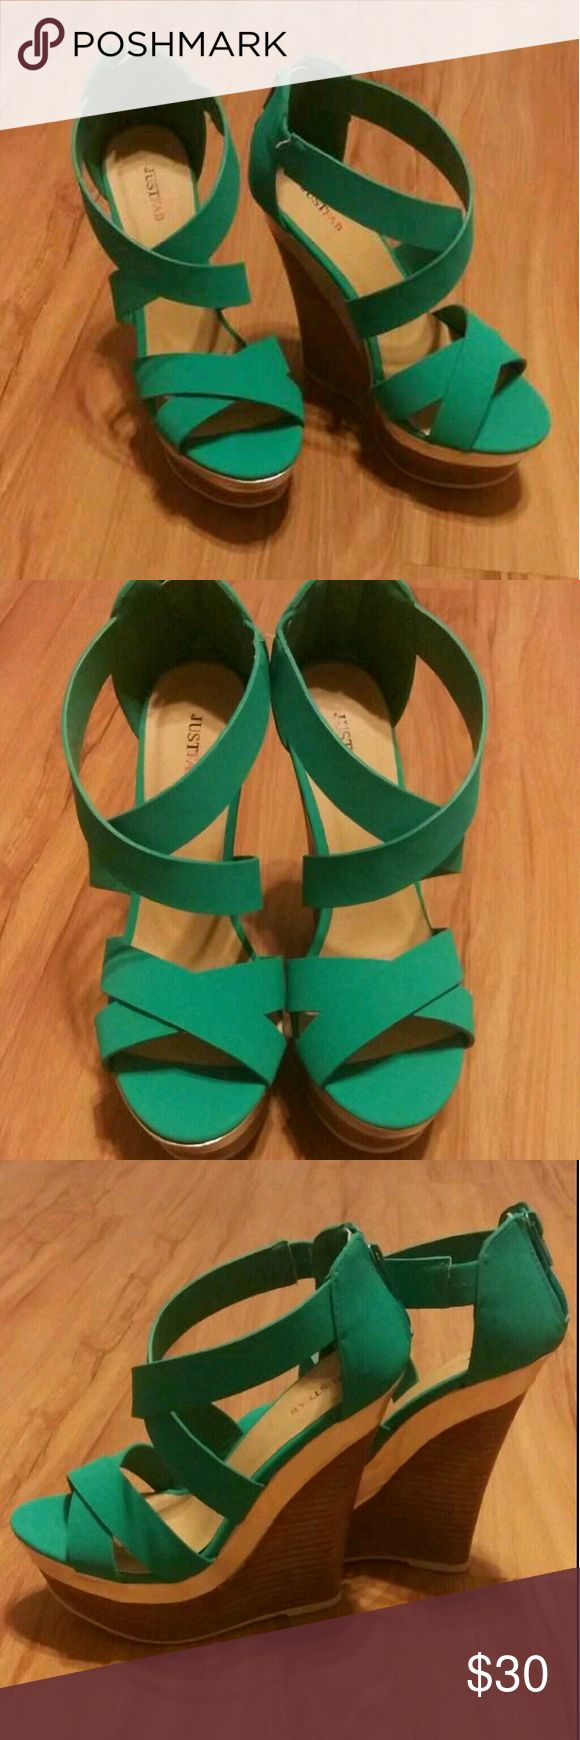 Justfab strappy teal wedges Adorable strappy teal wedges from justfab! Tried on a few times but never actually worn!! They are just to tall for me lol JustFab Shoes Wedges